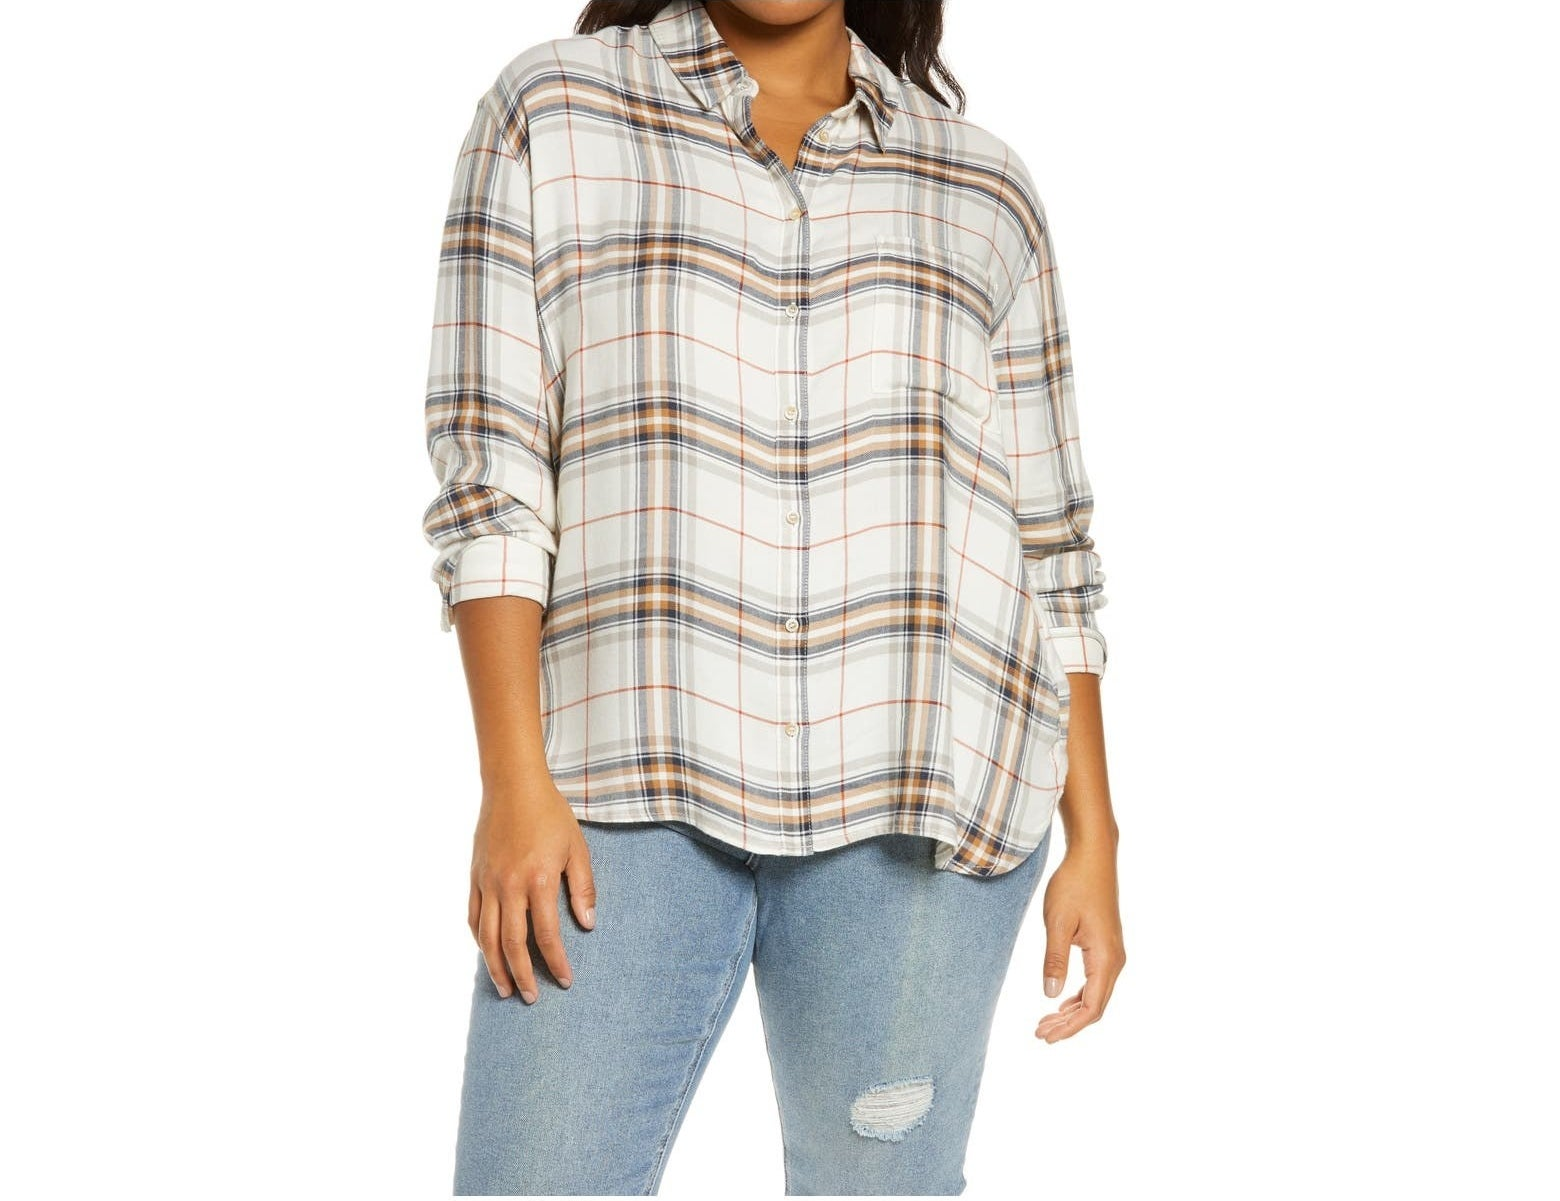 The ivory, red, and navy plaid shirt